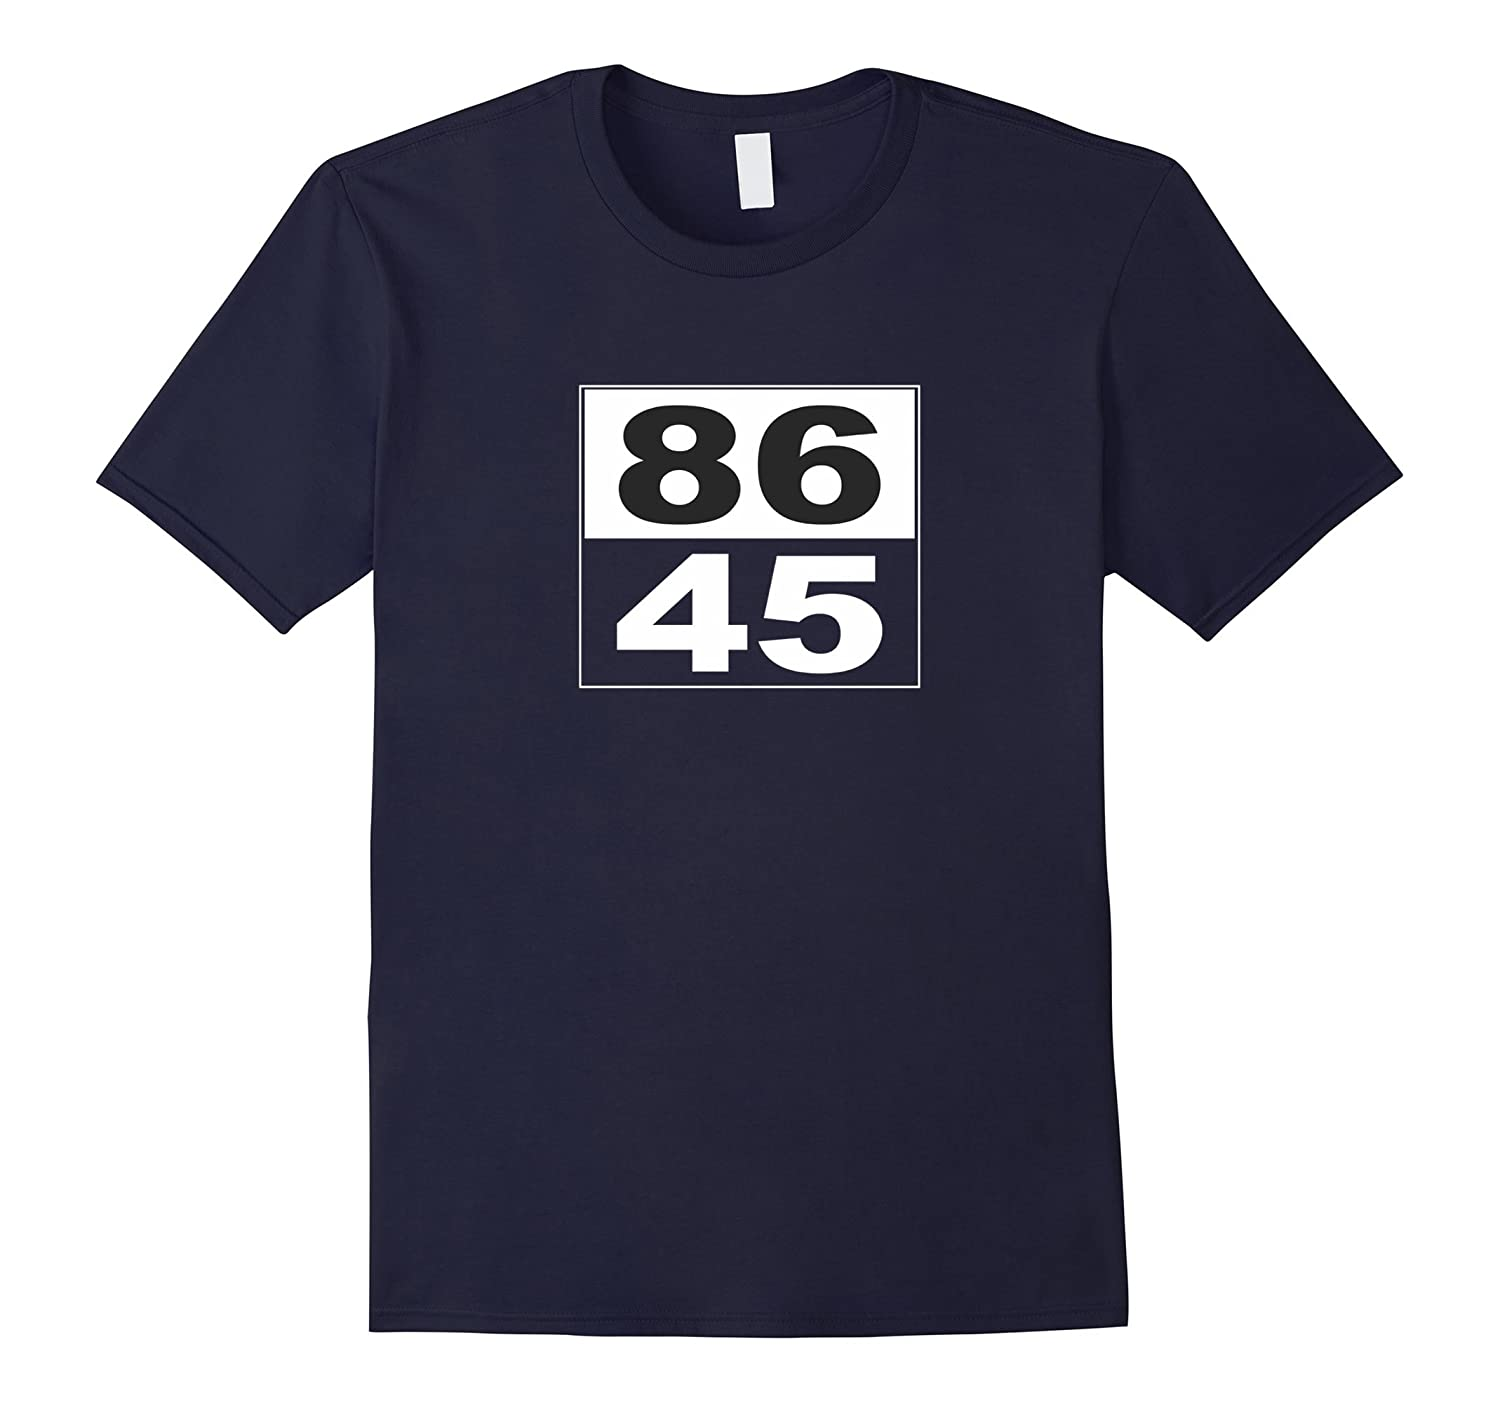 86 45 - Anti-Trump T-shirt - 86 the 45th President-BN